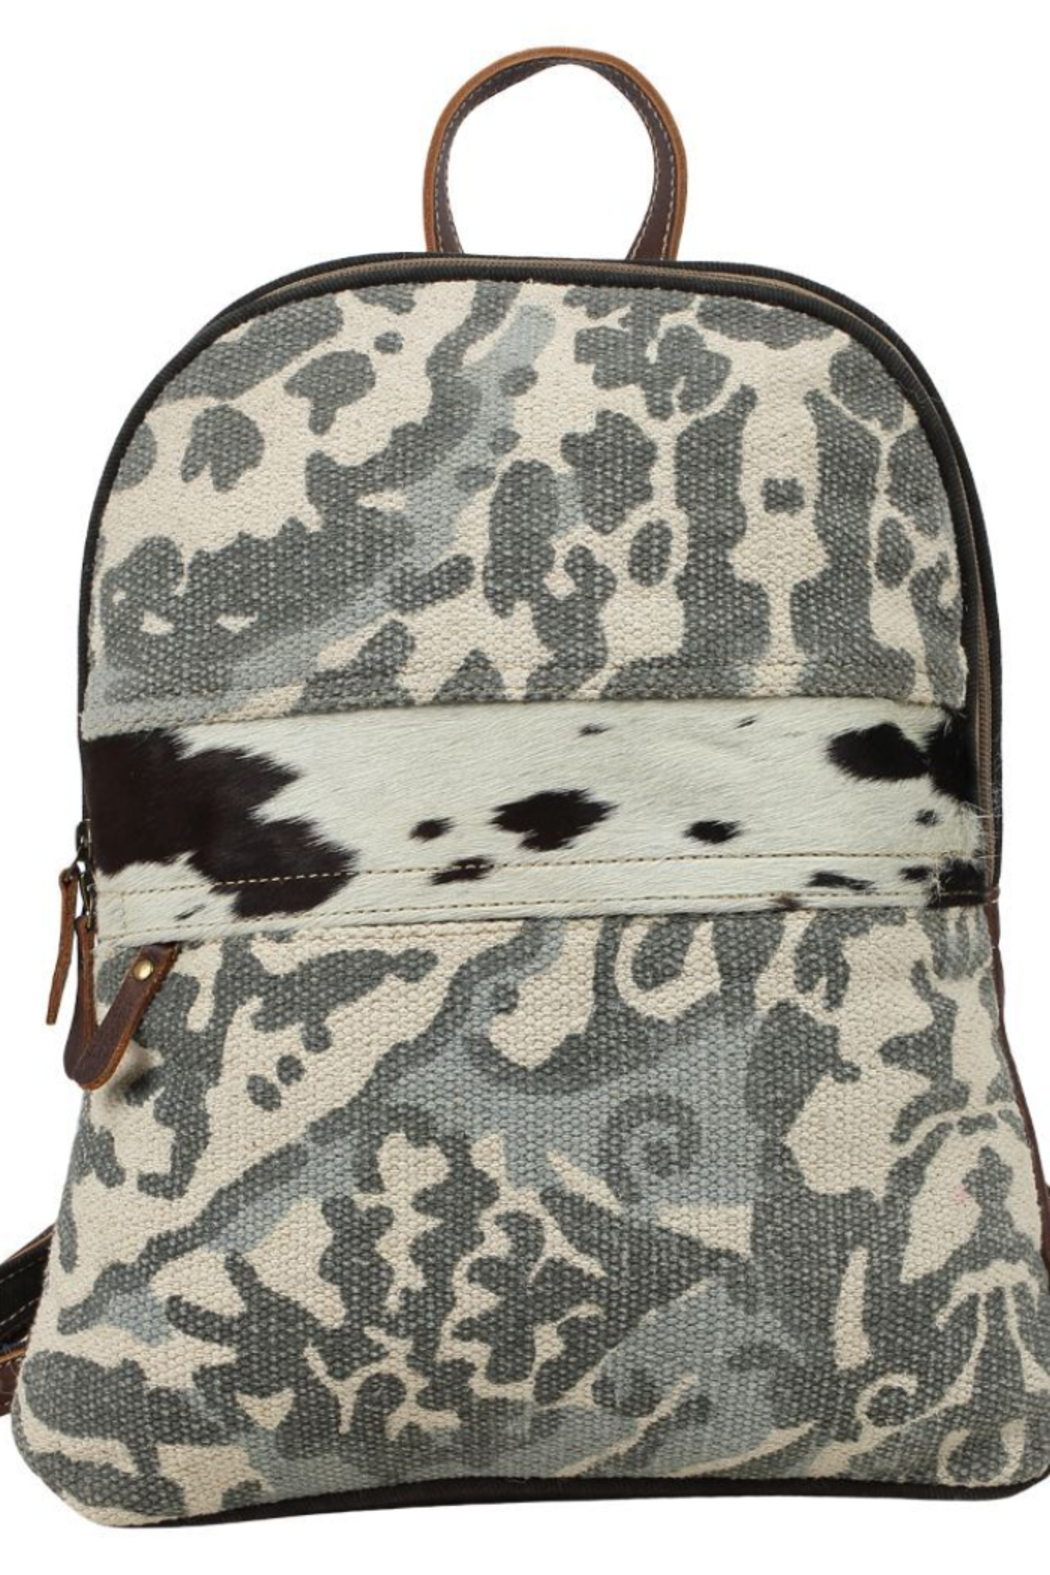 Myra Bags Camo Cowhide Backpack - Front Full Image